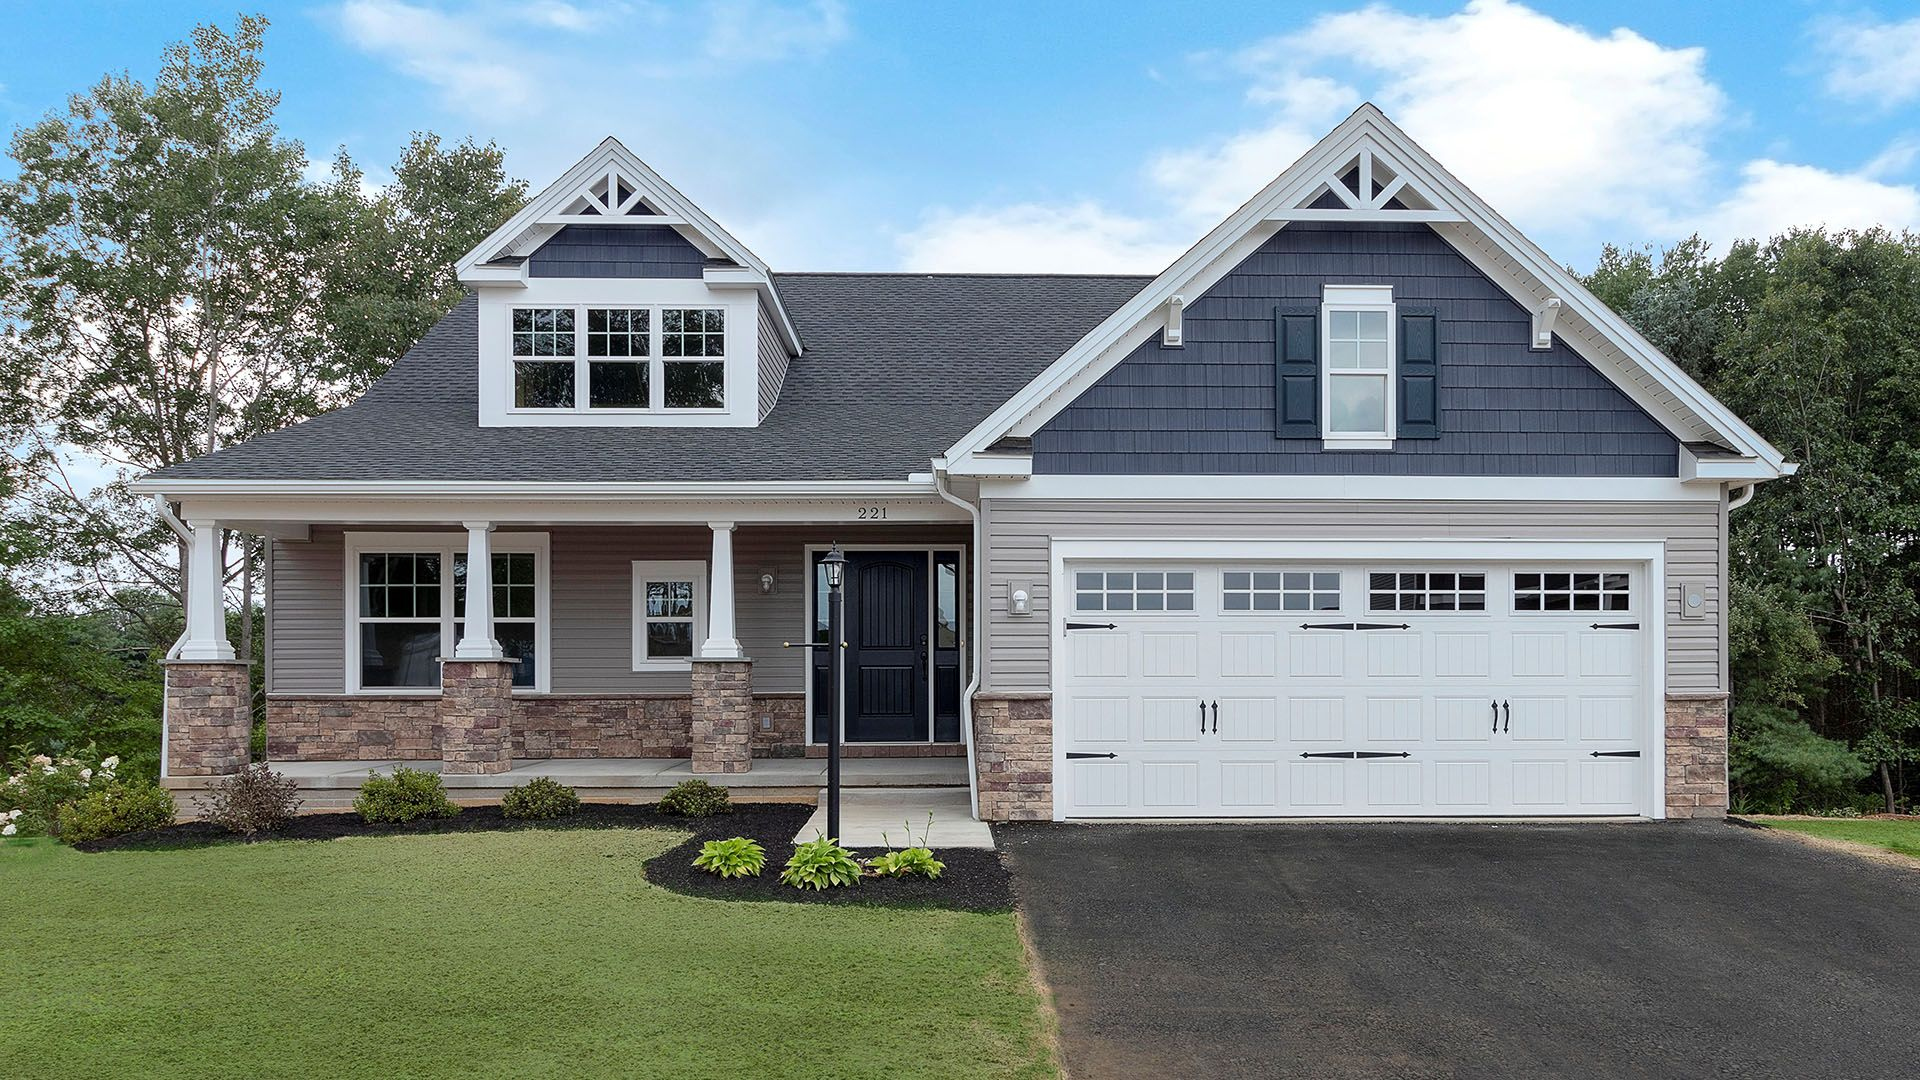 New Homes in Cumberland County, PA - 54 Communities